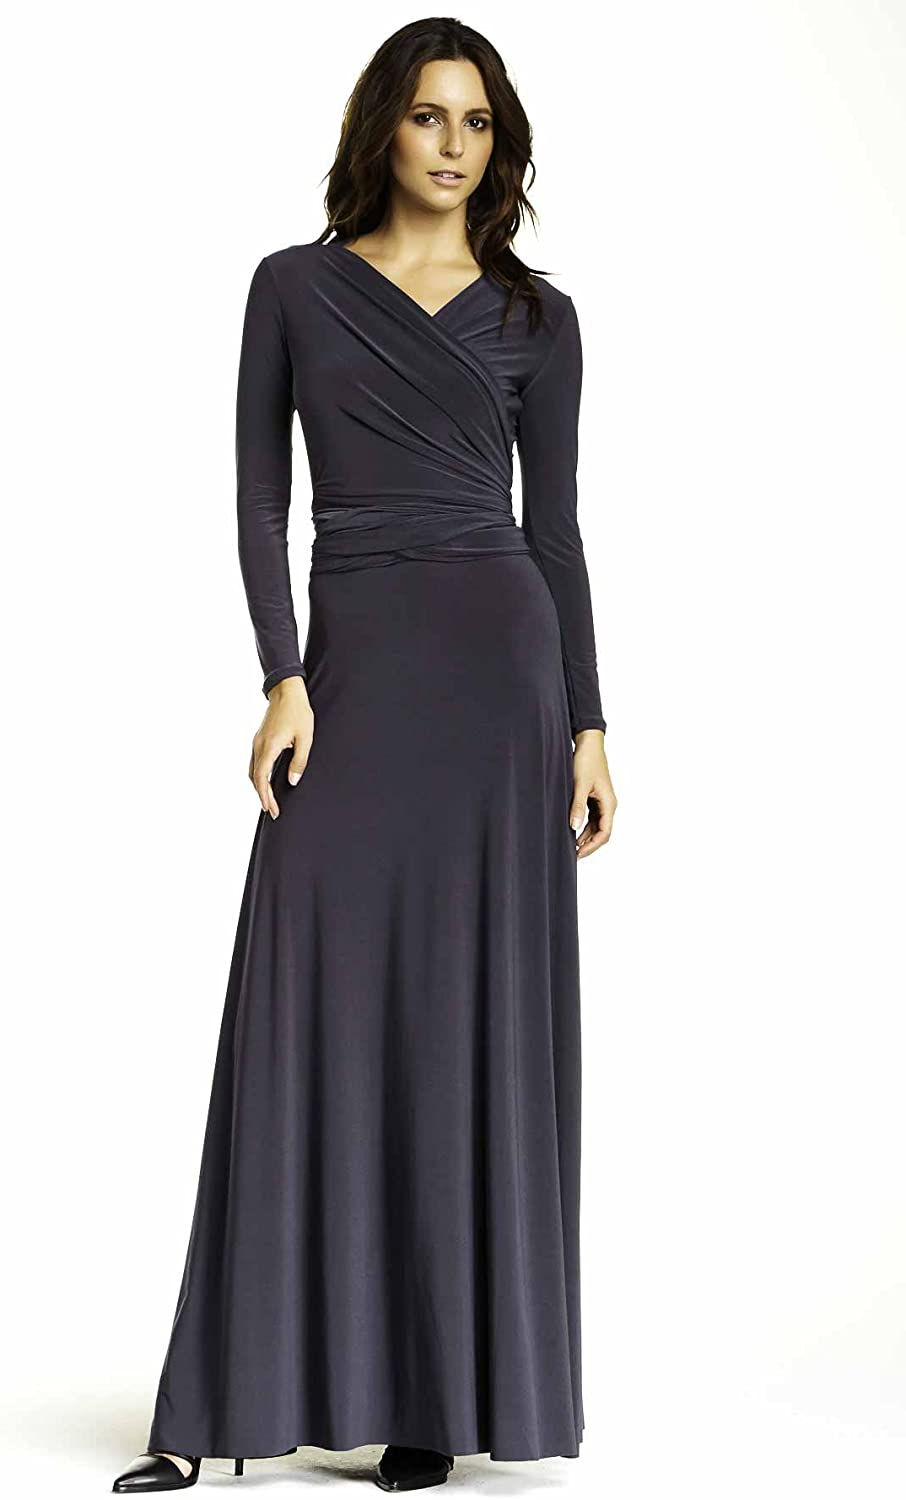 VON RONEN Women's Long Sleeve Convertible Front-to-Back Maxi Dress Cocktail Gown